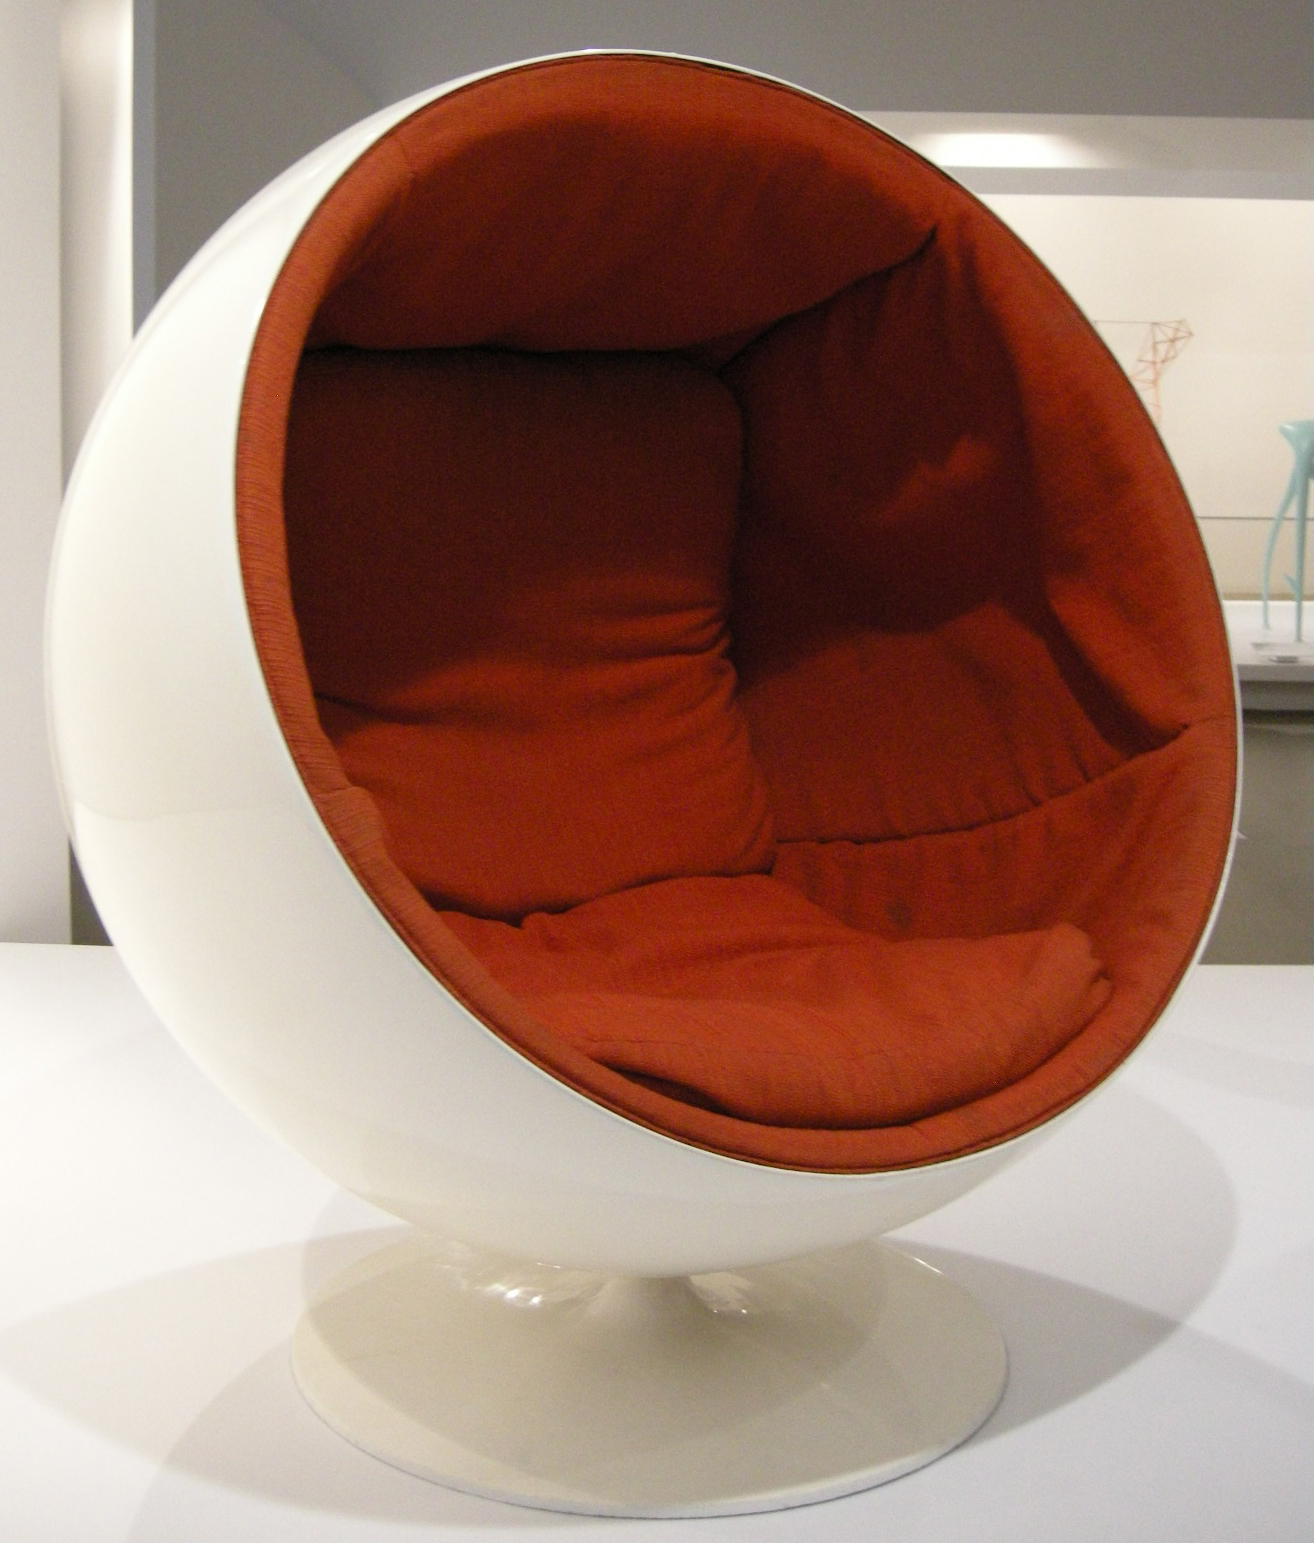 ball chair wikipedia. Black Bedroom Furniture Sets. Home Design Ideas